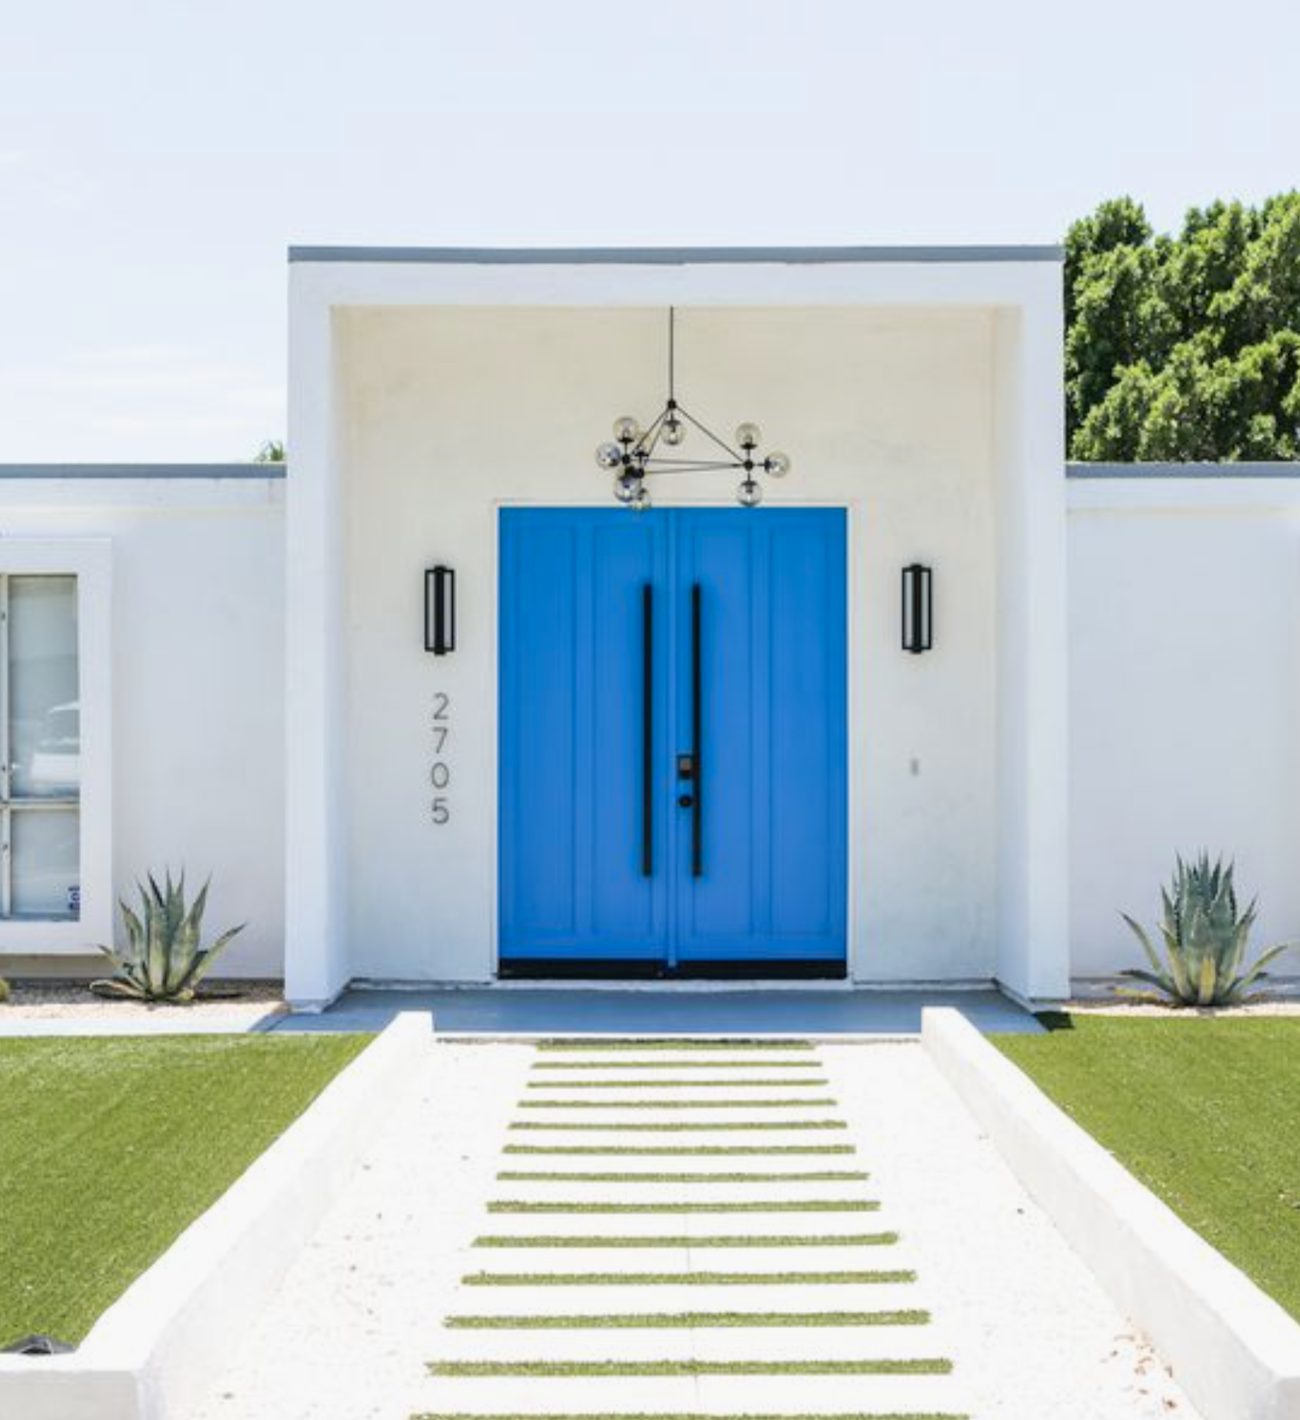 Also, our#2 Clearest Ocean Blue Benjamin Moore 2064-40 Florida Front Door Color is blue like the purest ocean water.